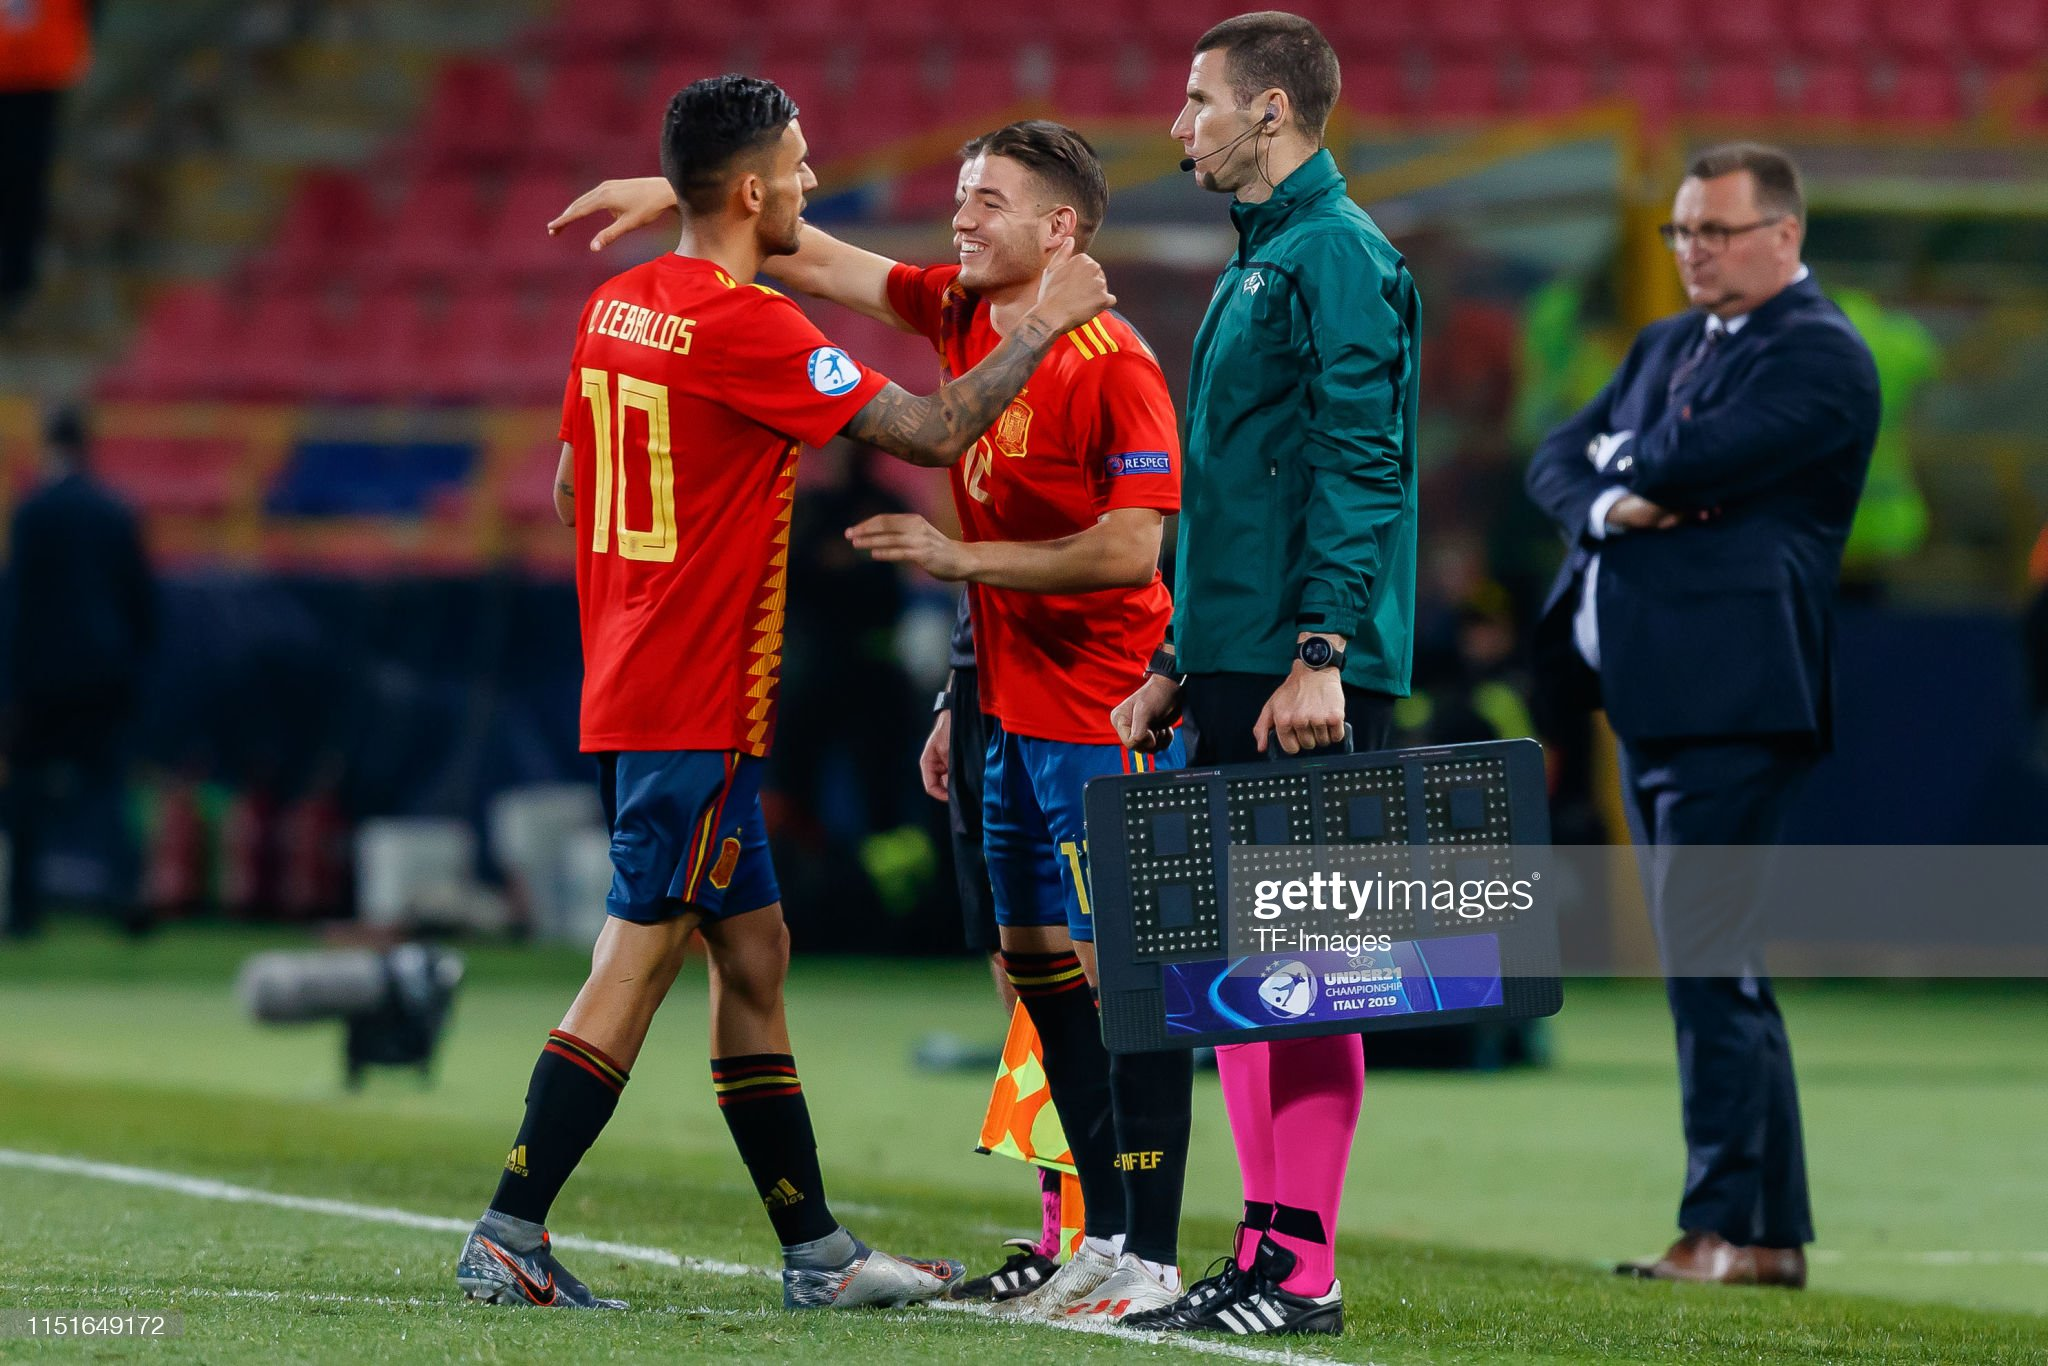 ¿Cuánto mide Manu Vallejo? - Altura - Real height Manu-vallejo-of-spain-substitutes-dani-ceballos-of-spain-during-the-picture-id1151649172?s=2048x2048